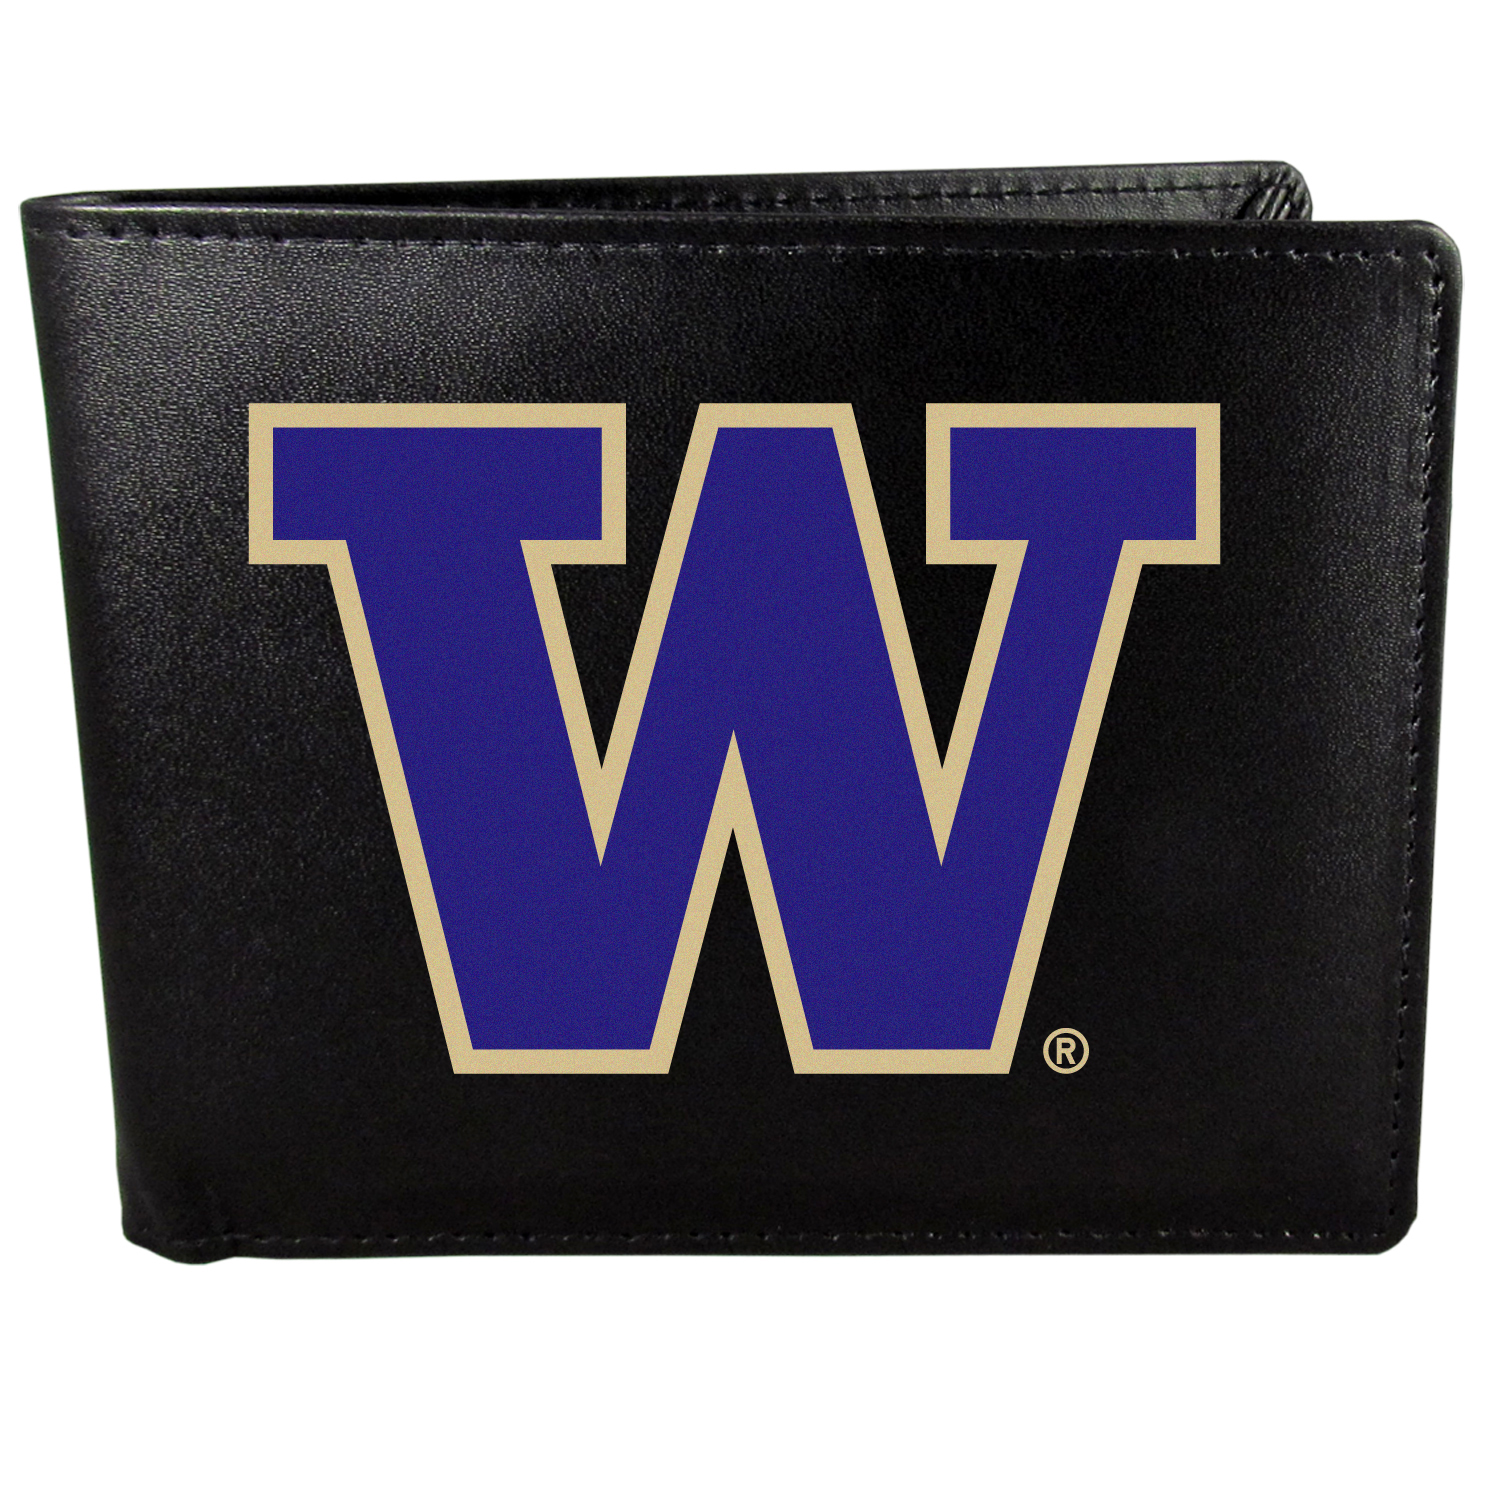 Washington Huskies Bi-fold Wallet Large Logo - Sports fans do not have to sacrifice style with this classic bi-fold wallet that sports the Washington Huskies extra large logo. This men's fashion accessory has a leather grain look and expert craftmanship for a quality wallet at a great price. The wallet features inner credit card slots, windowed ID slot and a large billfold pocket. The front of the wallet features a printed team logo.